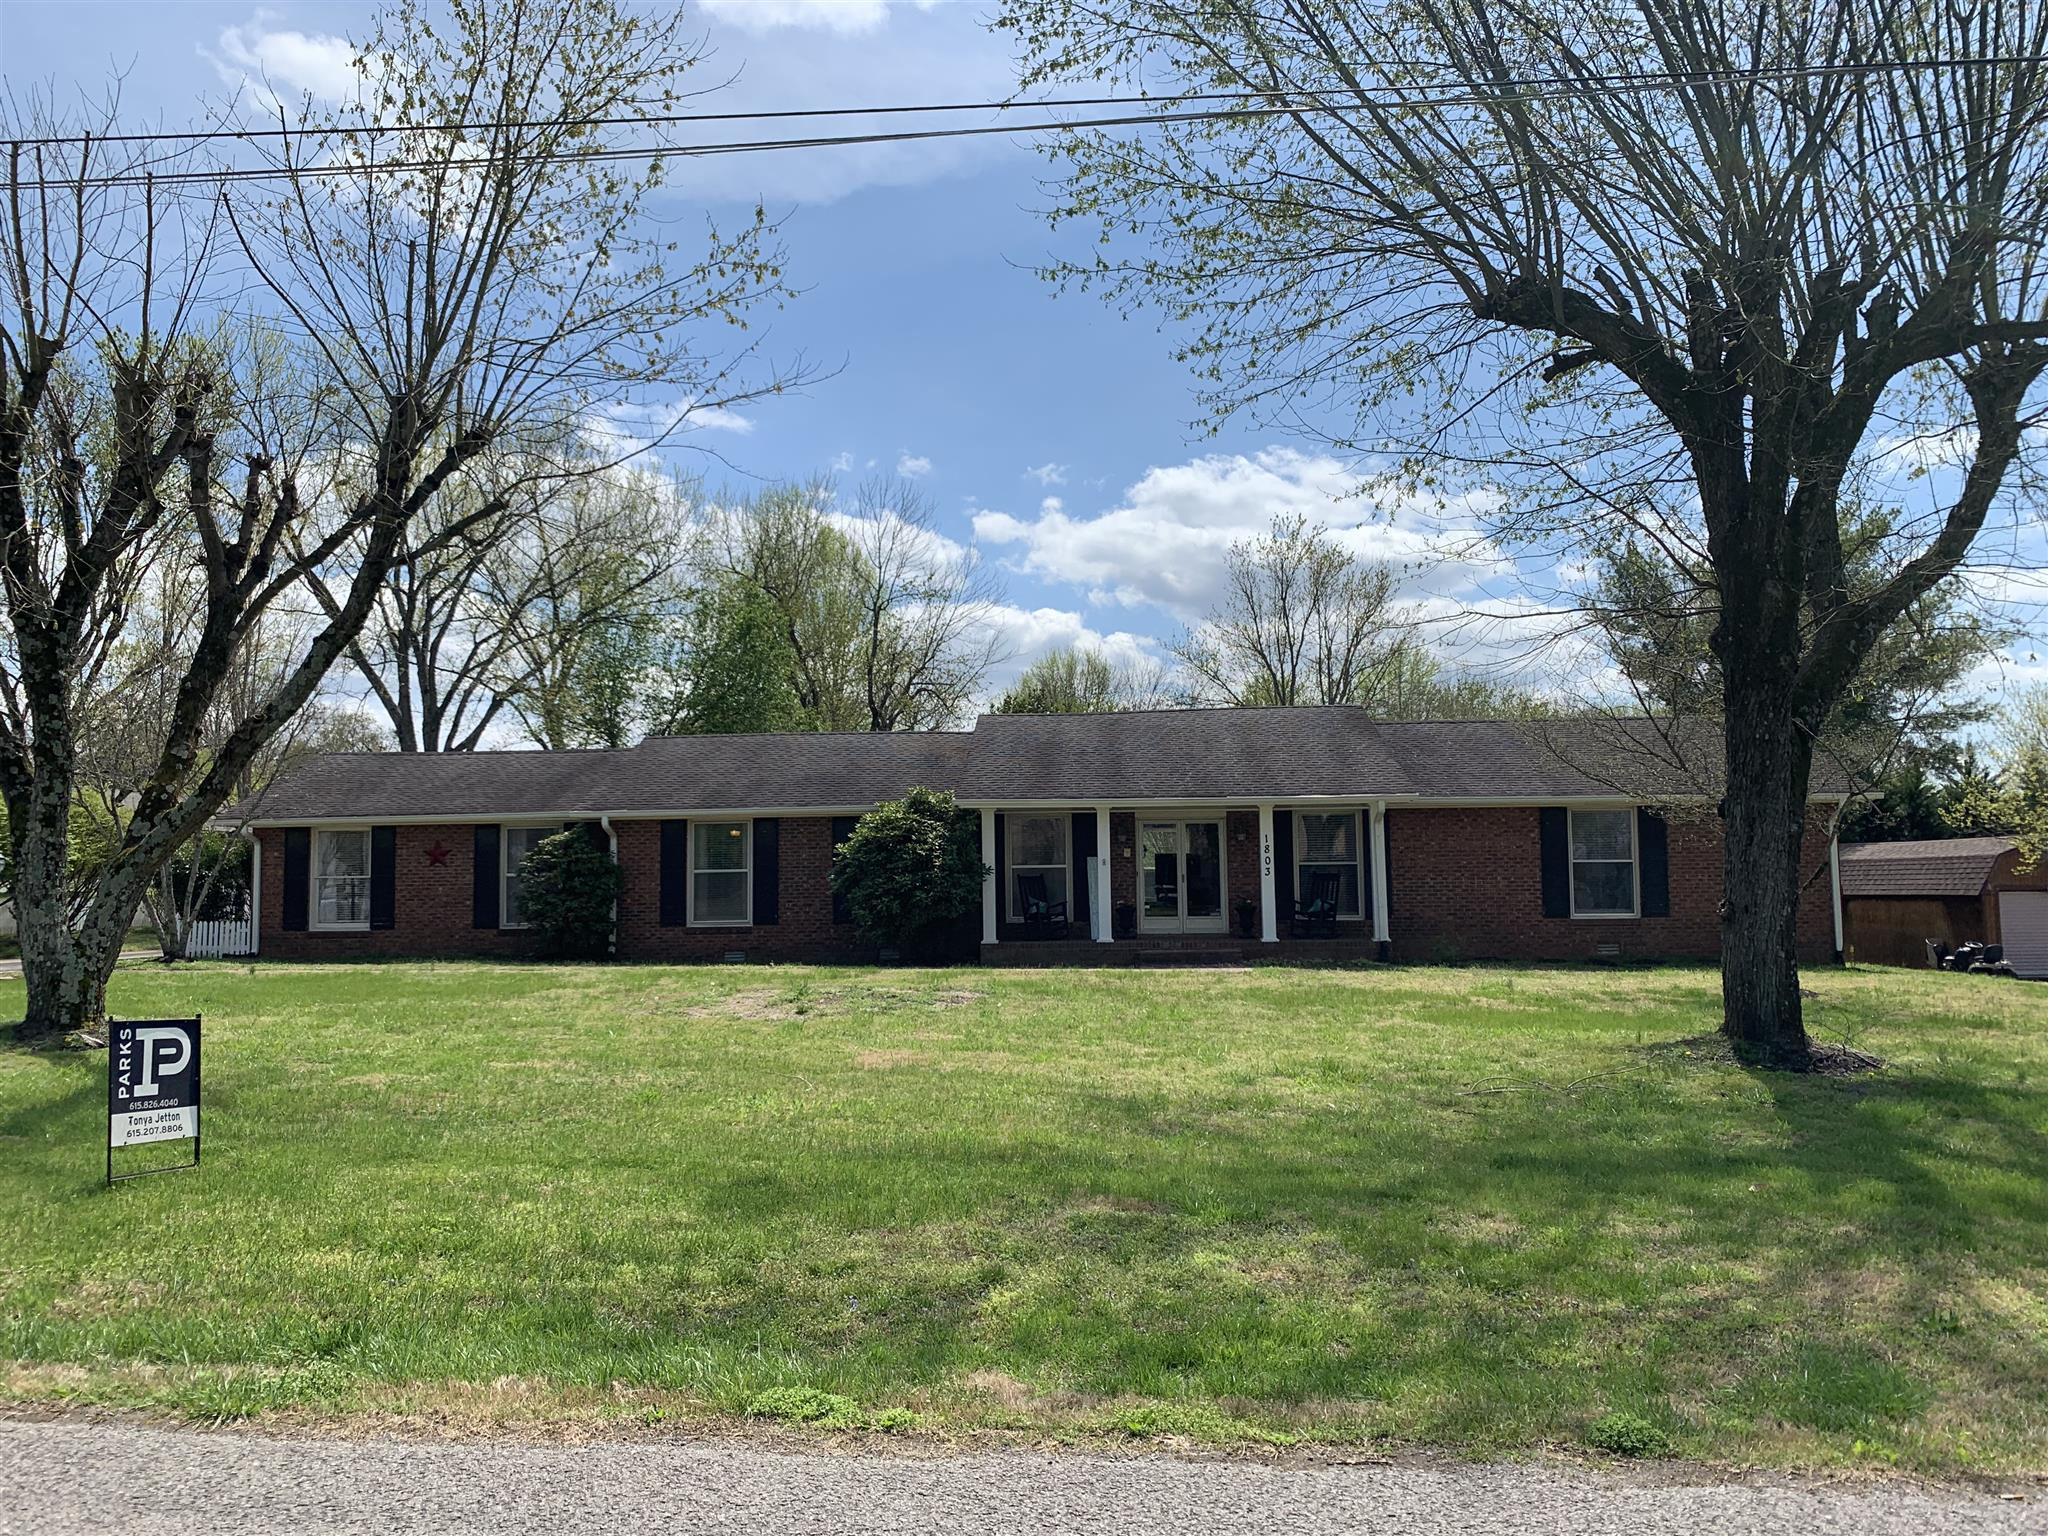 1803 W LORI LEE DR, Gallatin, Tennessee